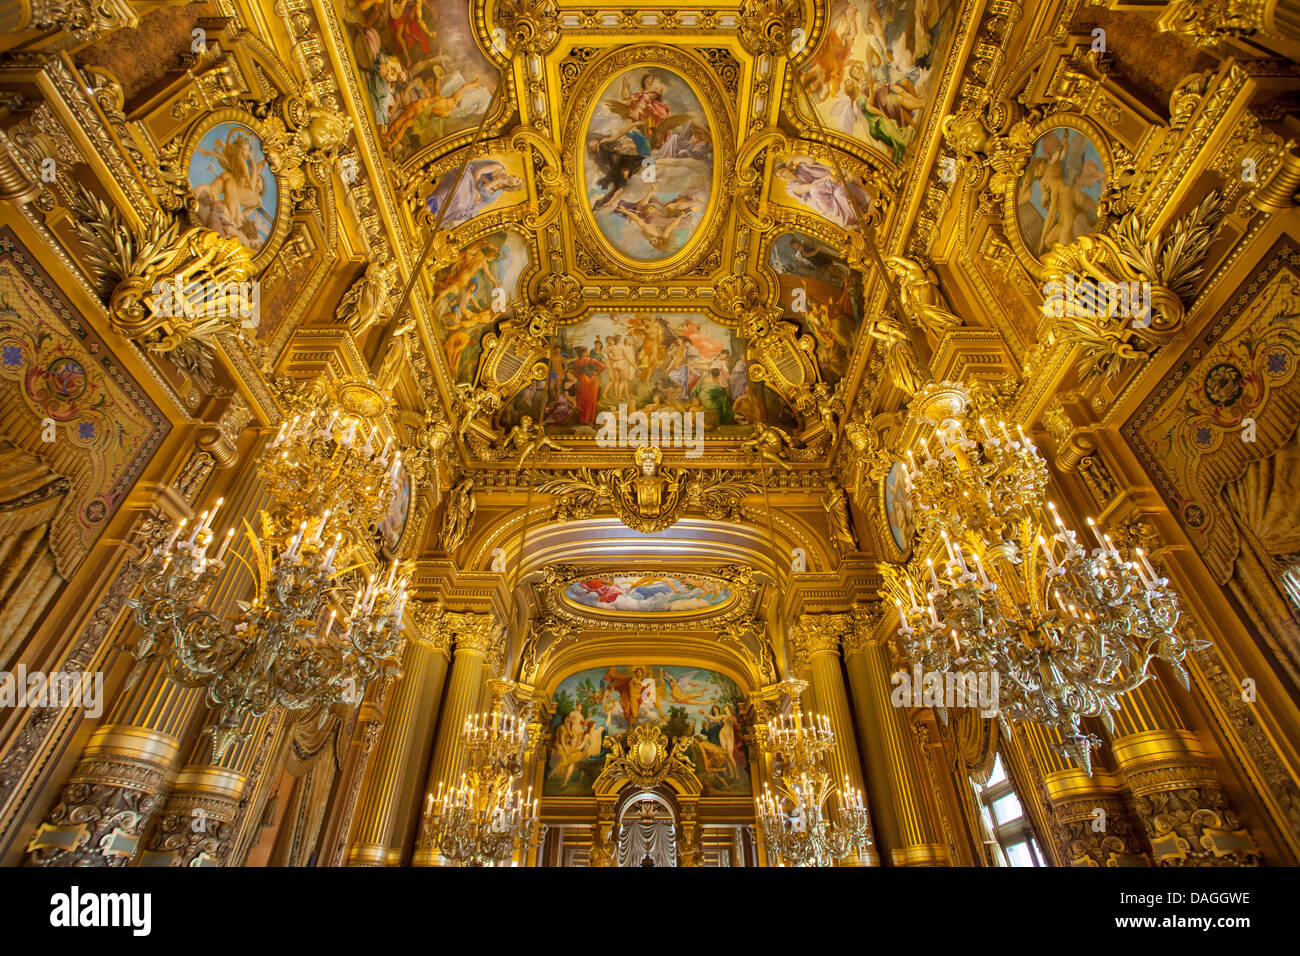 Ceiling detail of the Grand Foyer, Palais Garnier - Opera House, Paris France - Stock Image